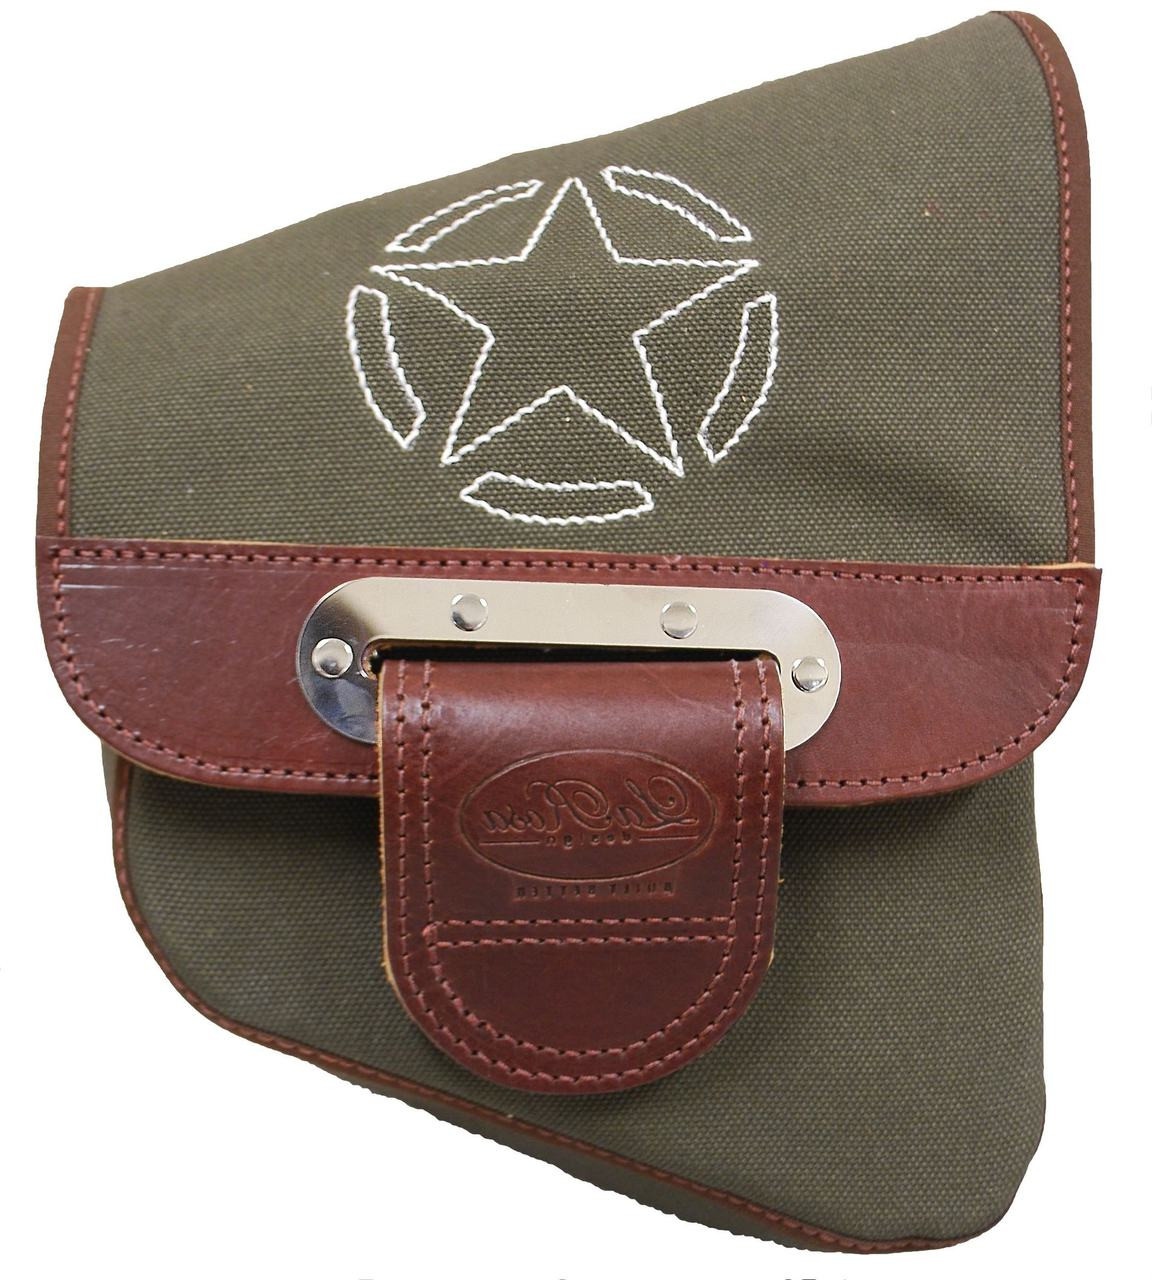 6e564457f314 La Rosa Harley-Davidson All HD Softail Canvas Softail Right Side Saddle Bag  Swingarm Bag Army Green with White Stitching Star. Price   114.99. Image 1